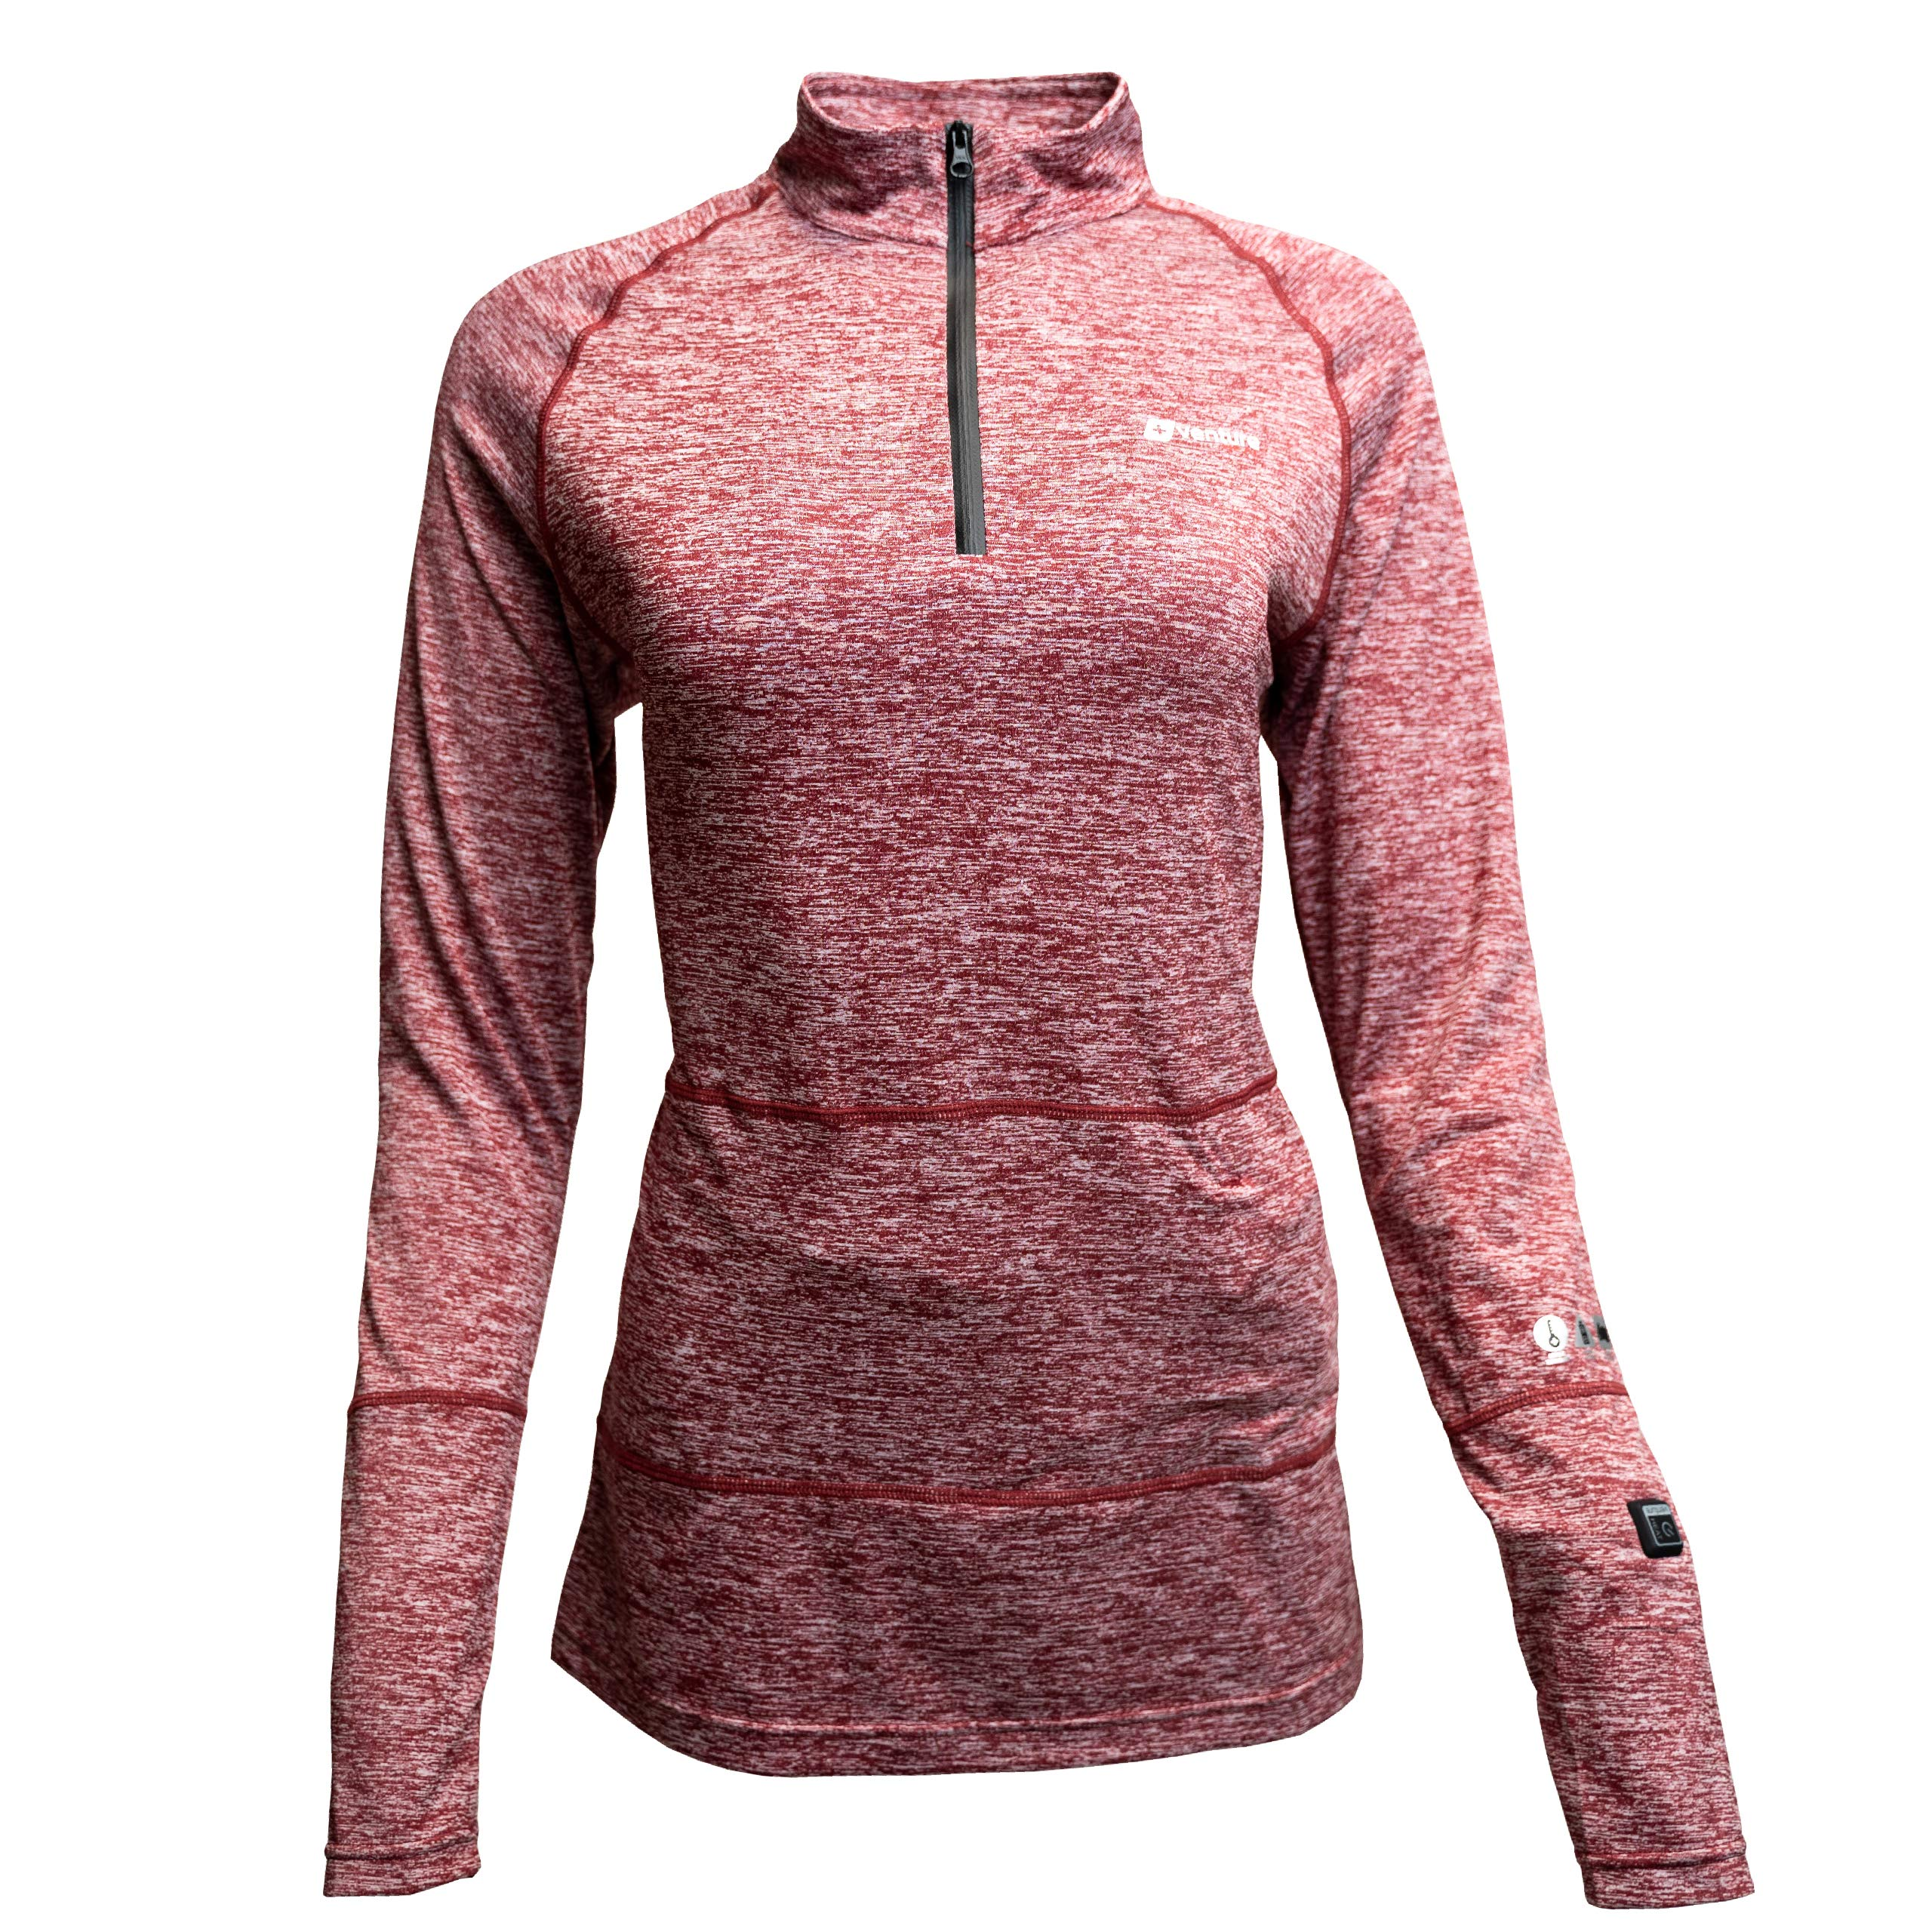 Venture Heat Women's Heated Shirt Thermal Underwear with Battery Pack - Long John, 1/4 Zip Electric Base Layer, Nomad (XL, Mauve) by Venture Heat